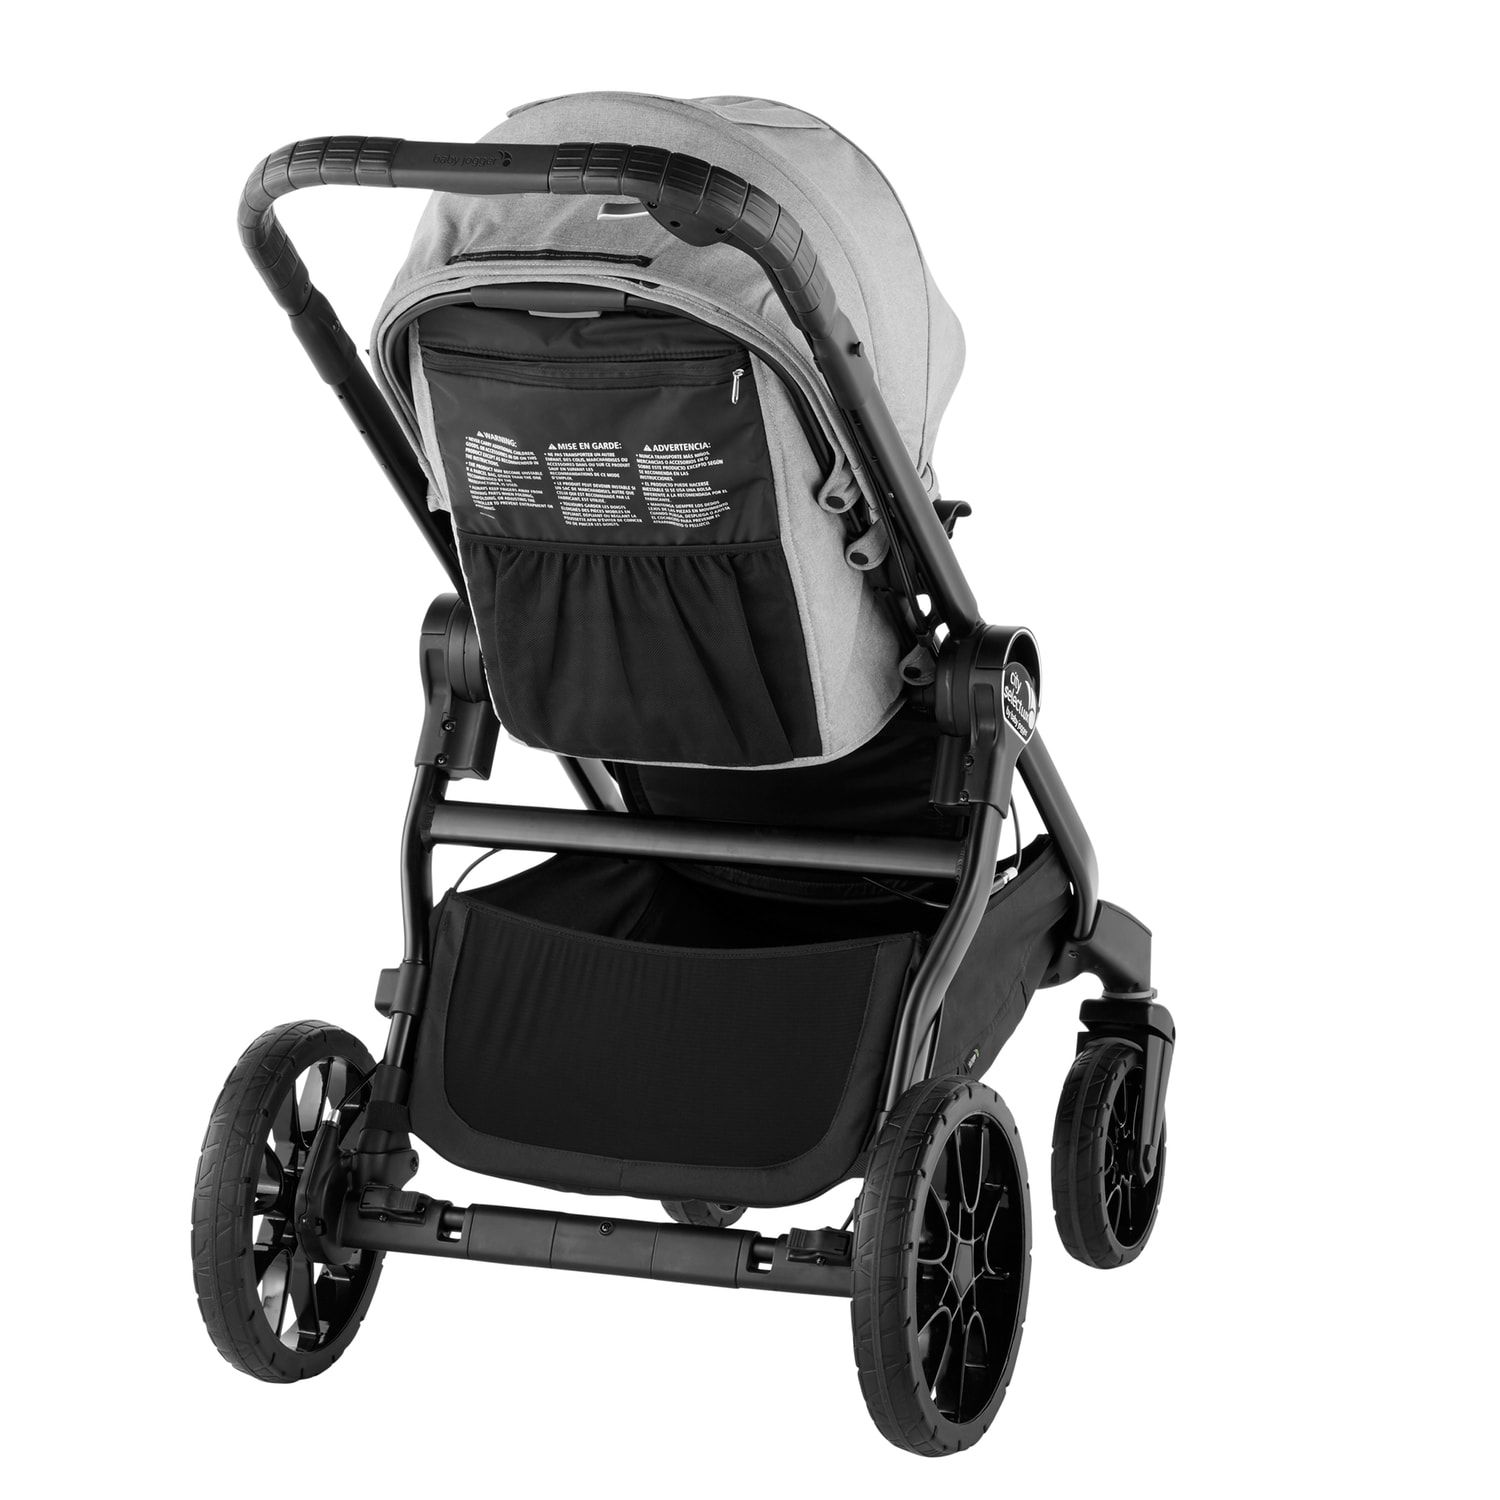 Baby Jogger City Select LUX Stroller City, Jogger, Baby